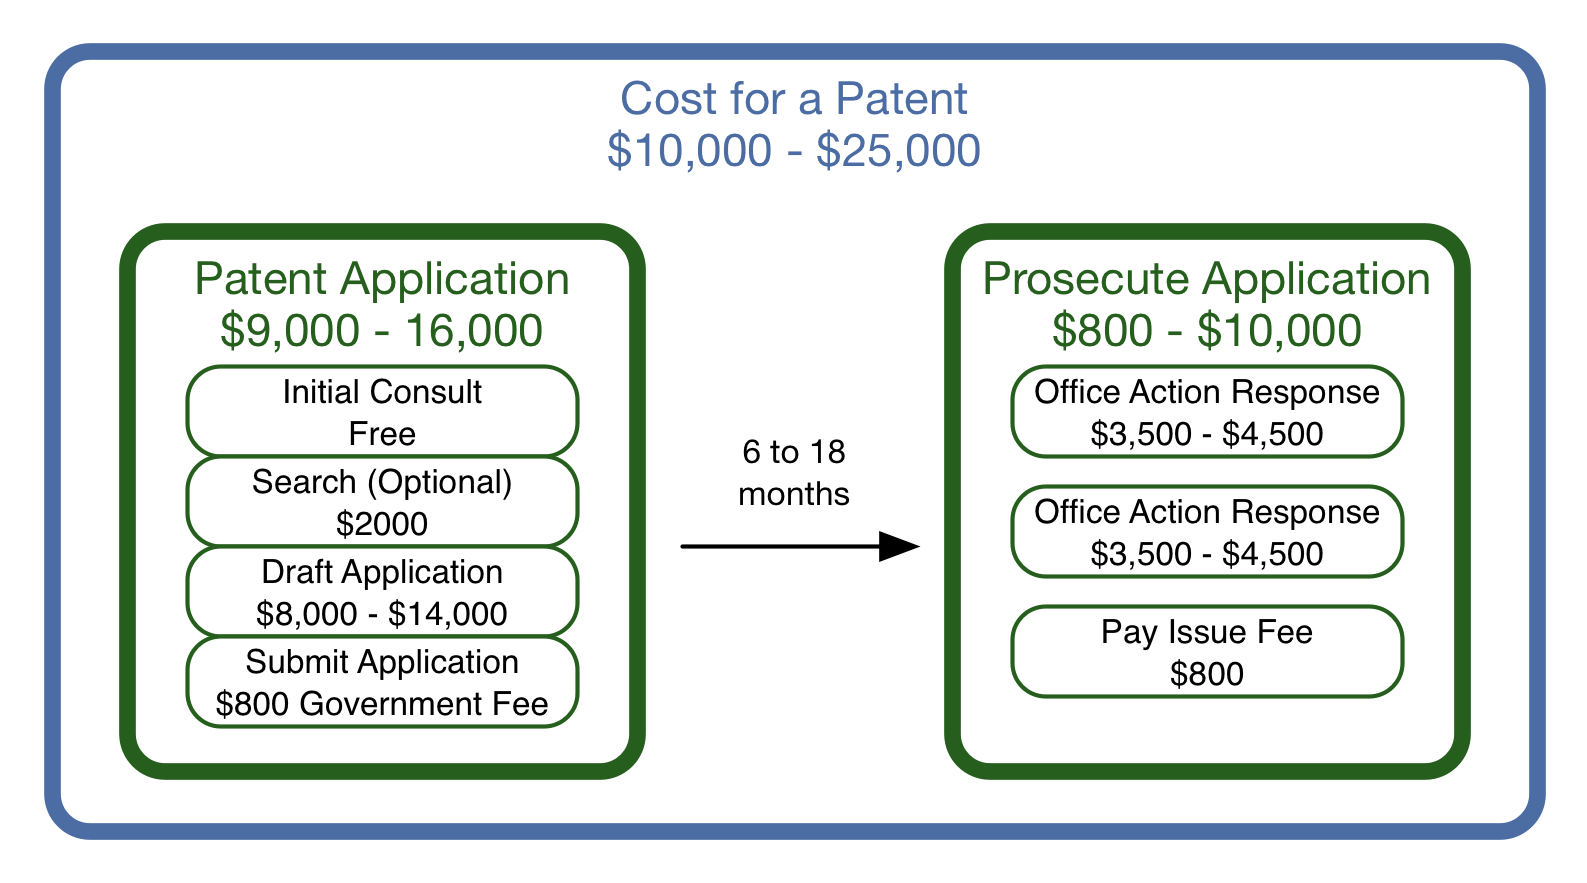 A patent can range in cost from $10,000 to $25,000